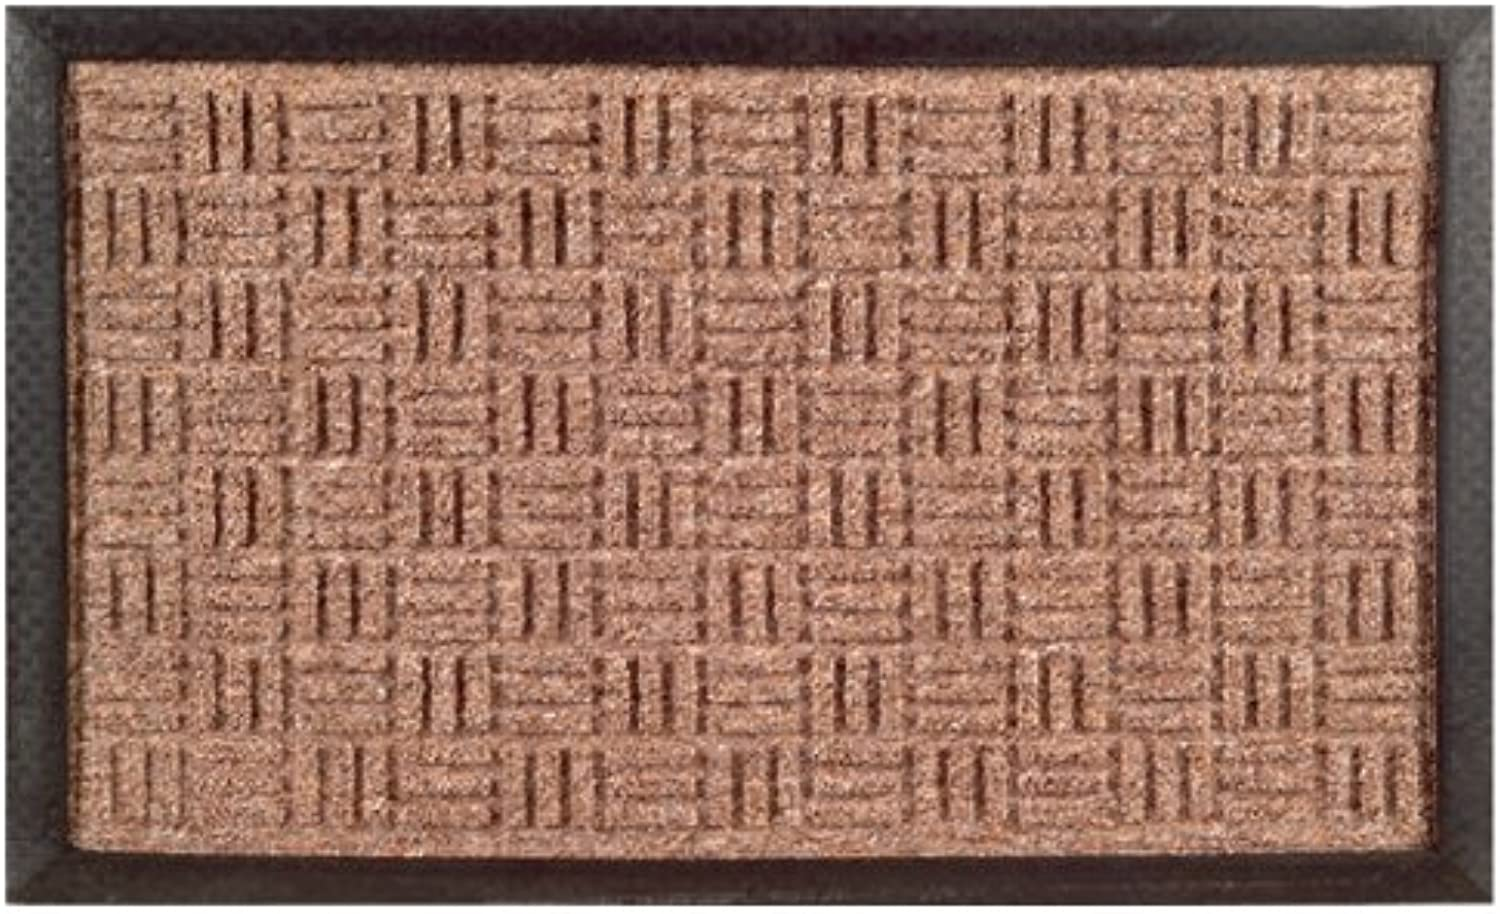 Imports Decor 861SMT-L Synthetic Rubber Mat, 24 x 36 , Brown